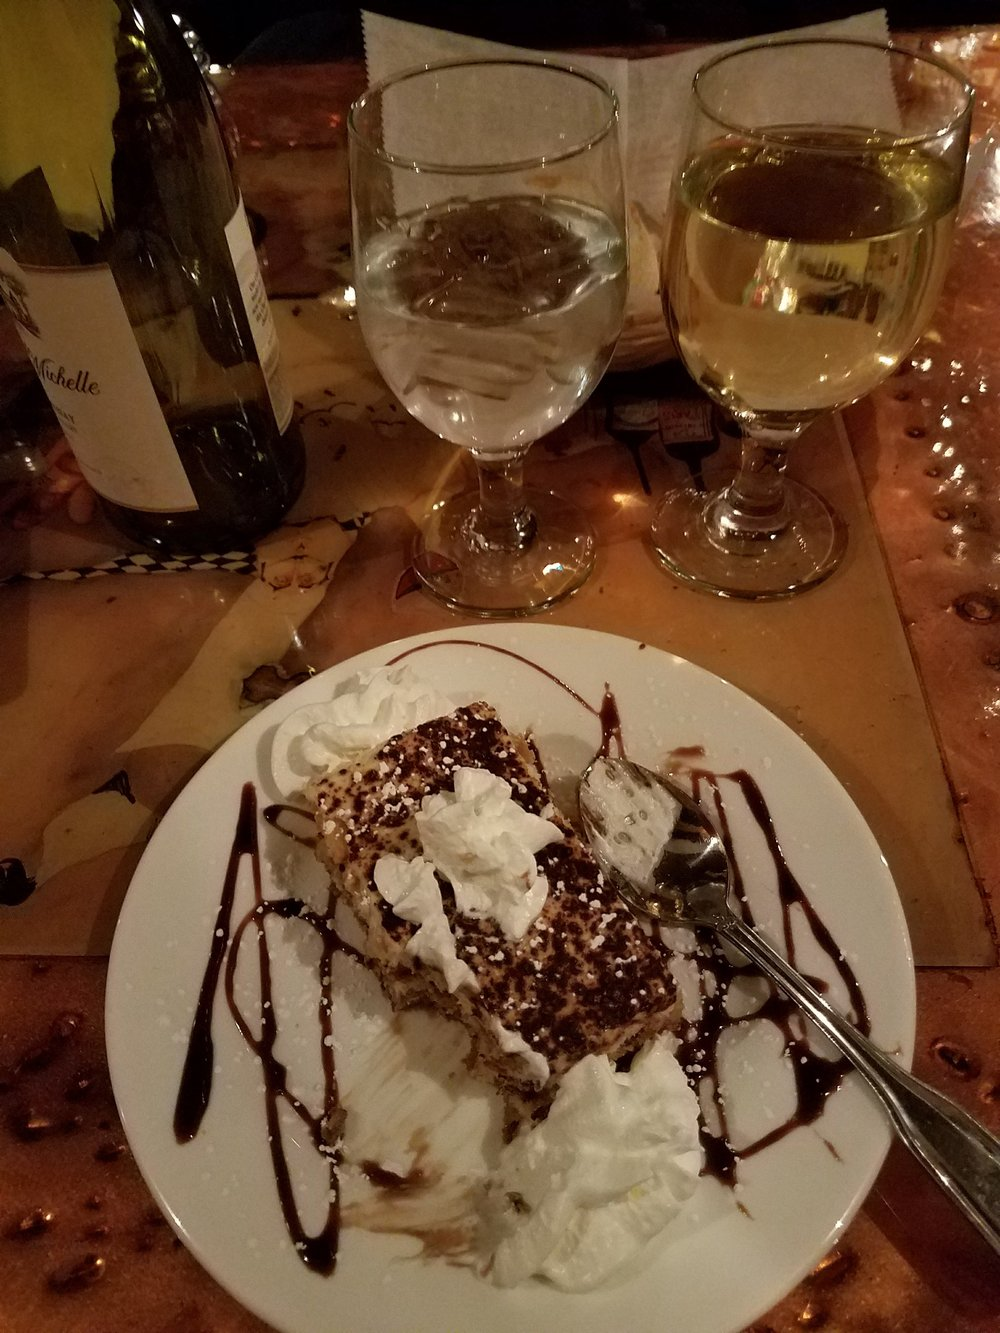 This tiramisu played a small part in my decision to move here.